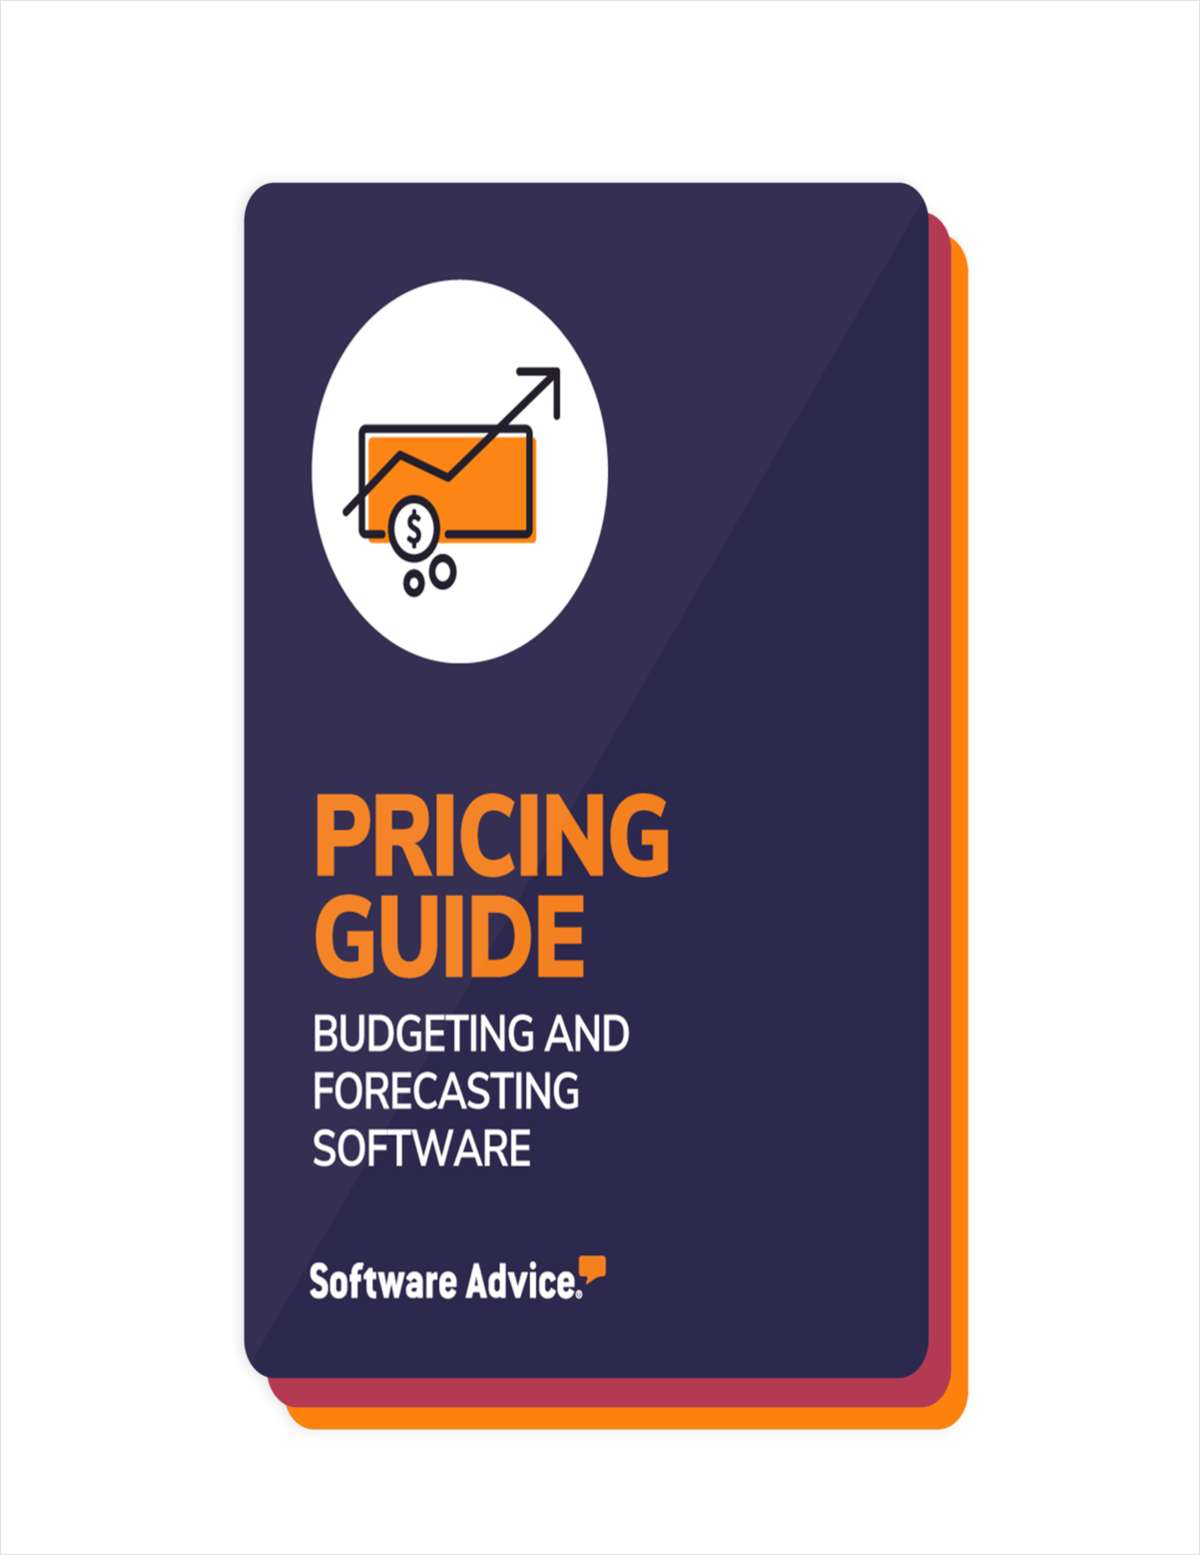 How Much Does Budgeting and Forecasting Software Cost in 2021? Hidden Costs & Breakdown